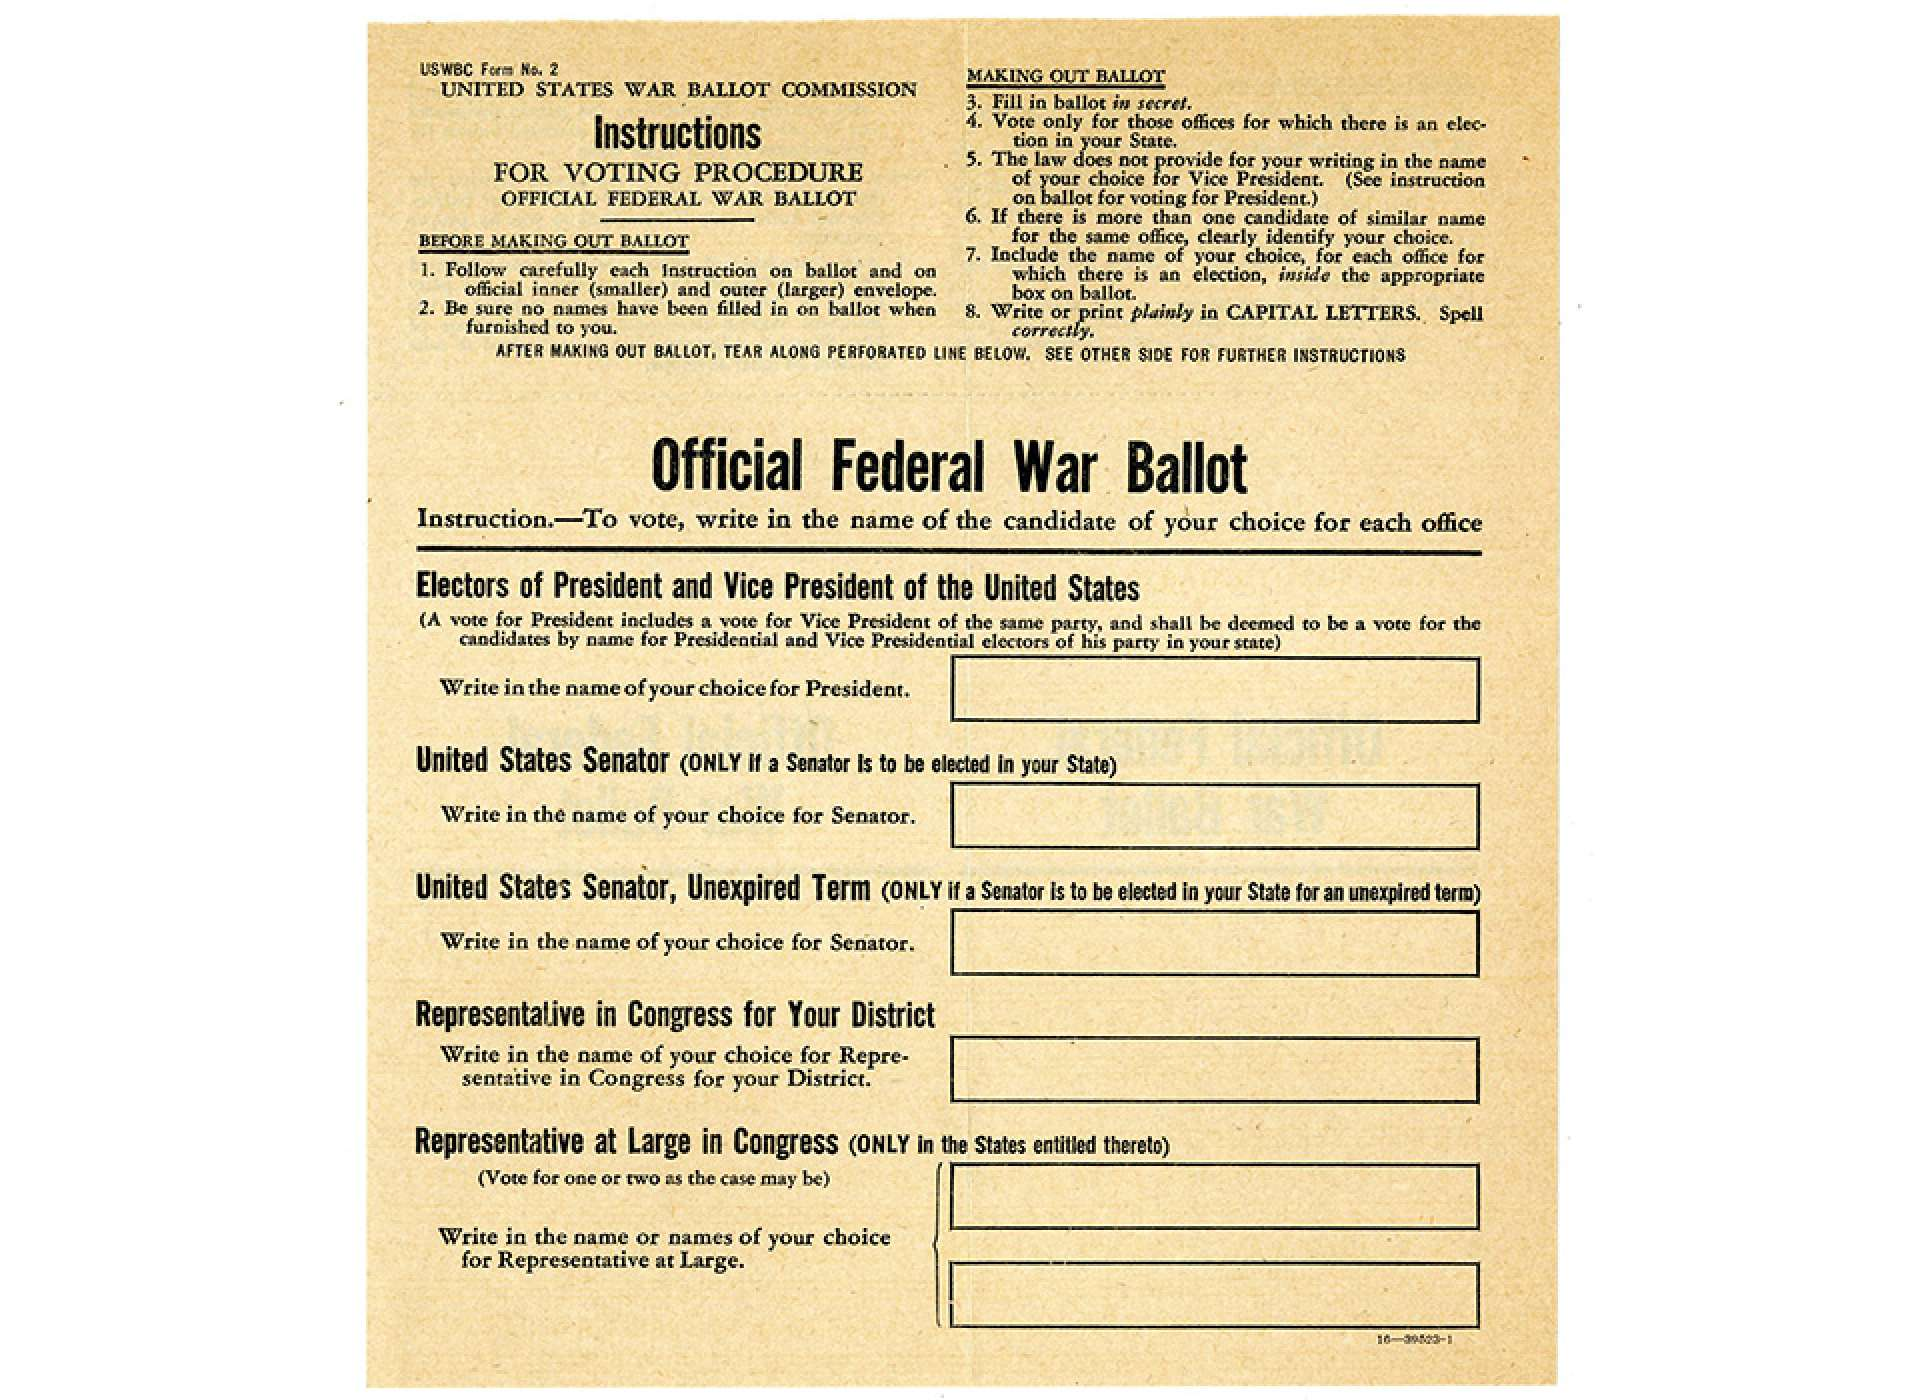 Image of the Federal War Ballot used in 1944